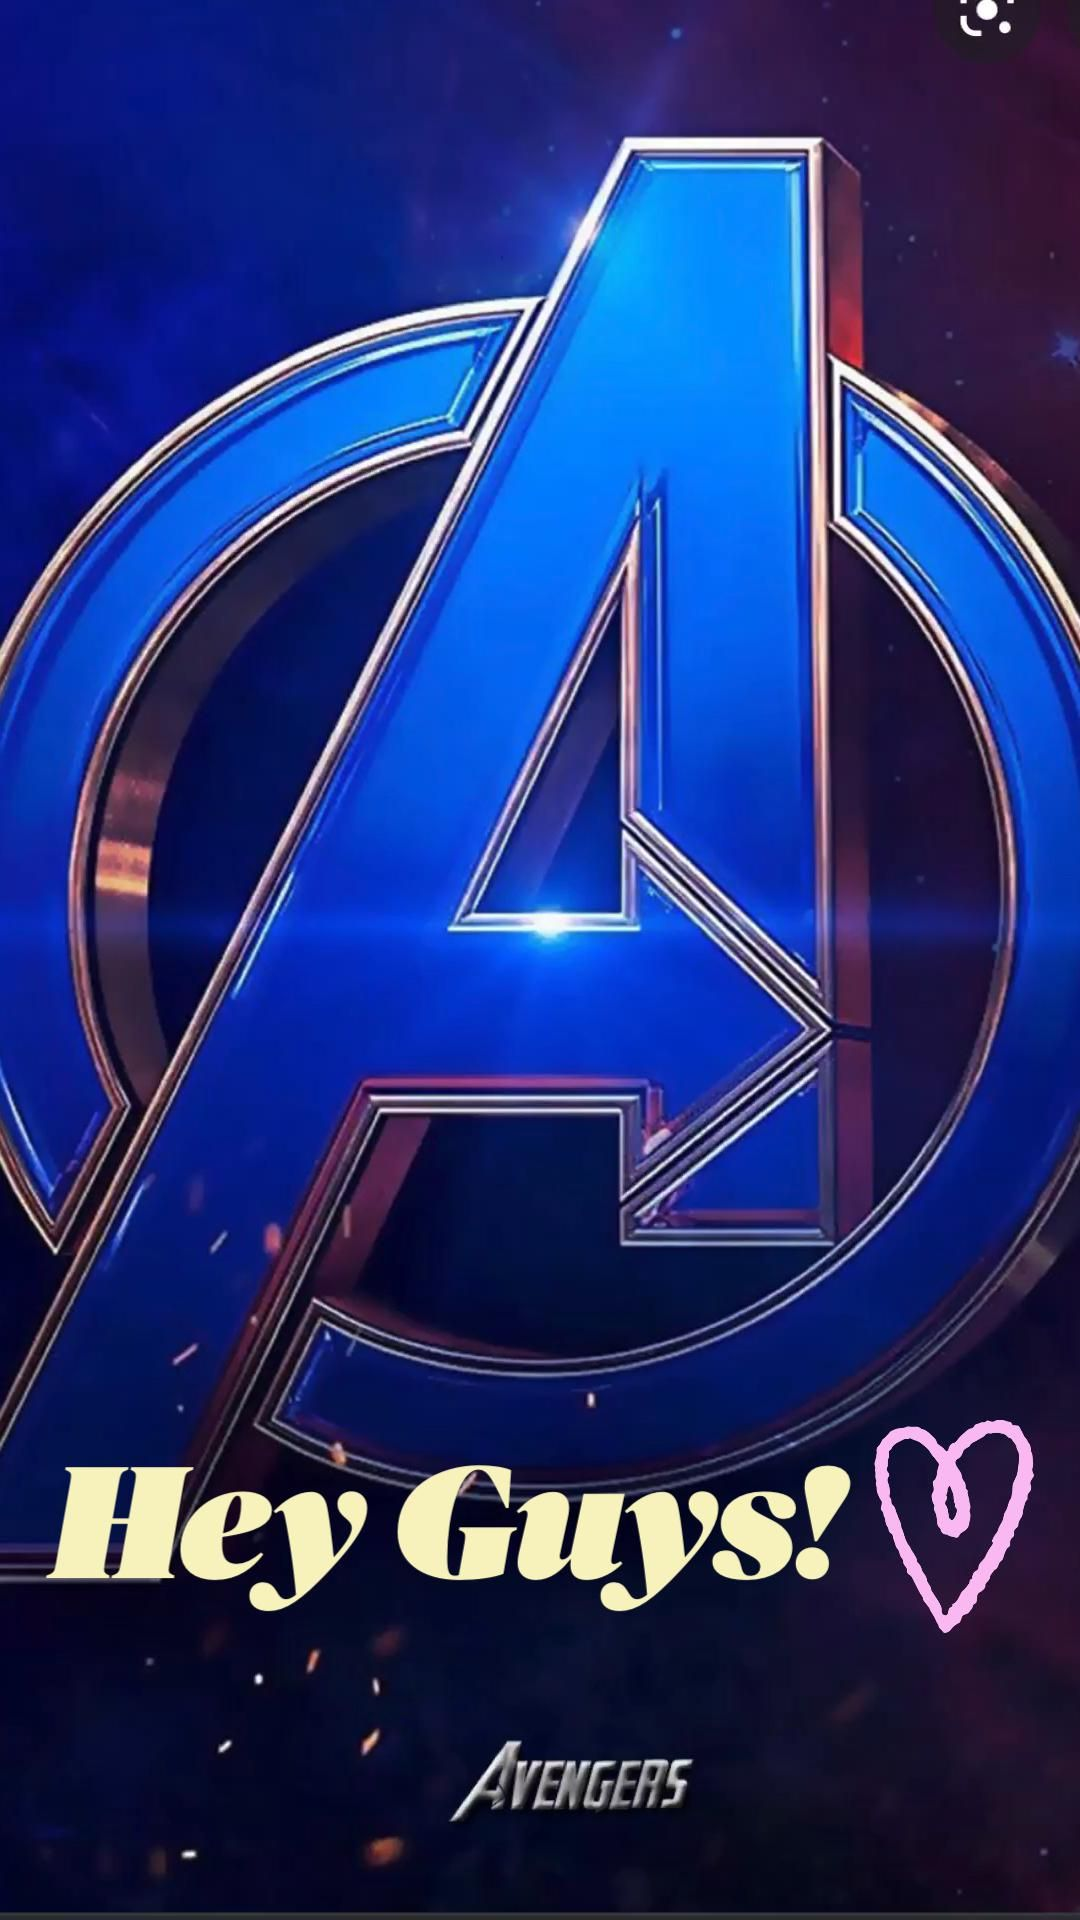 Hey Guys An Immersive Guide By Addygoodwin Avengers logo wallpaper hd 4k download